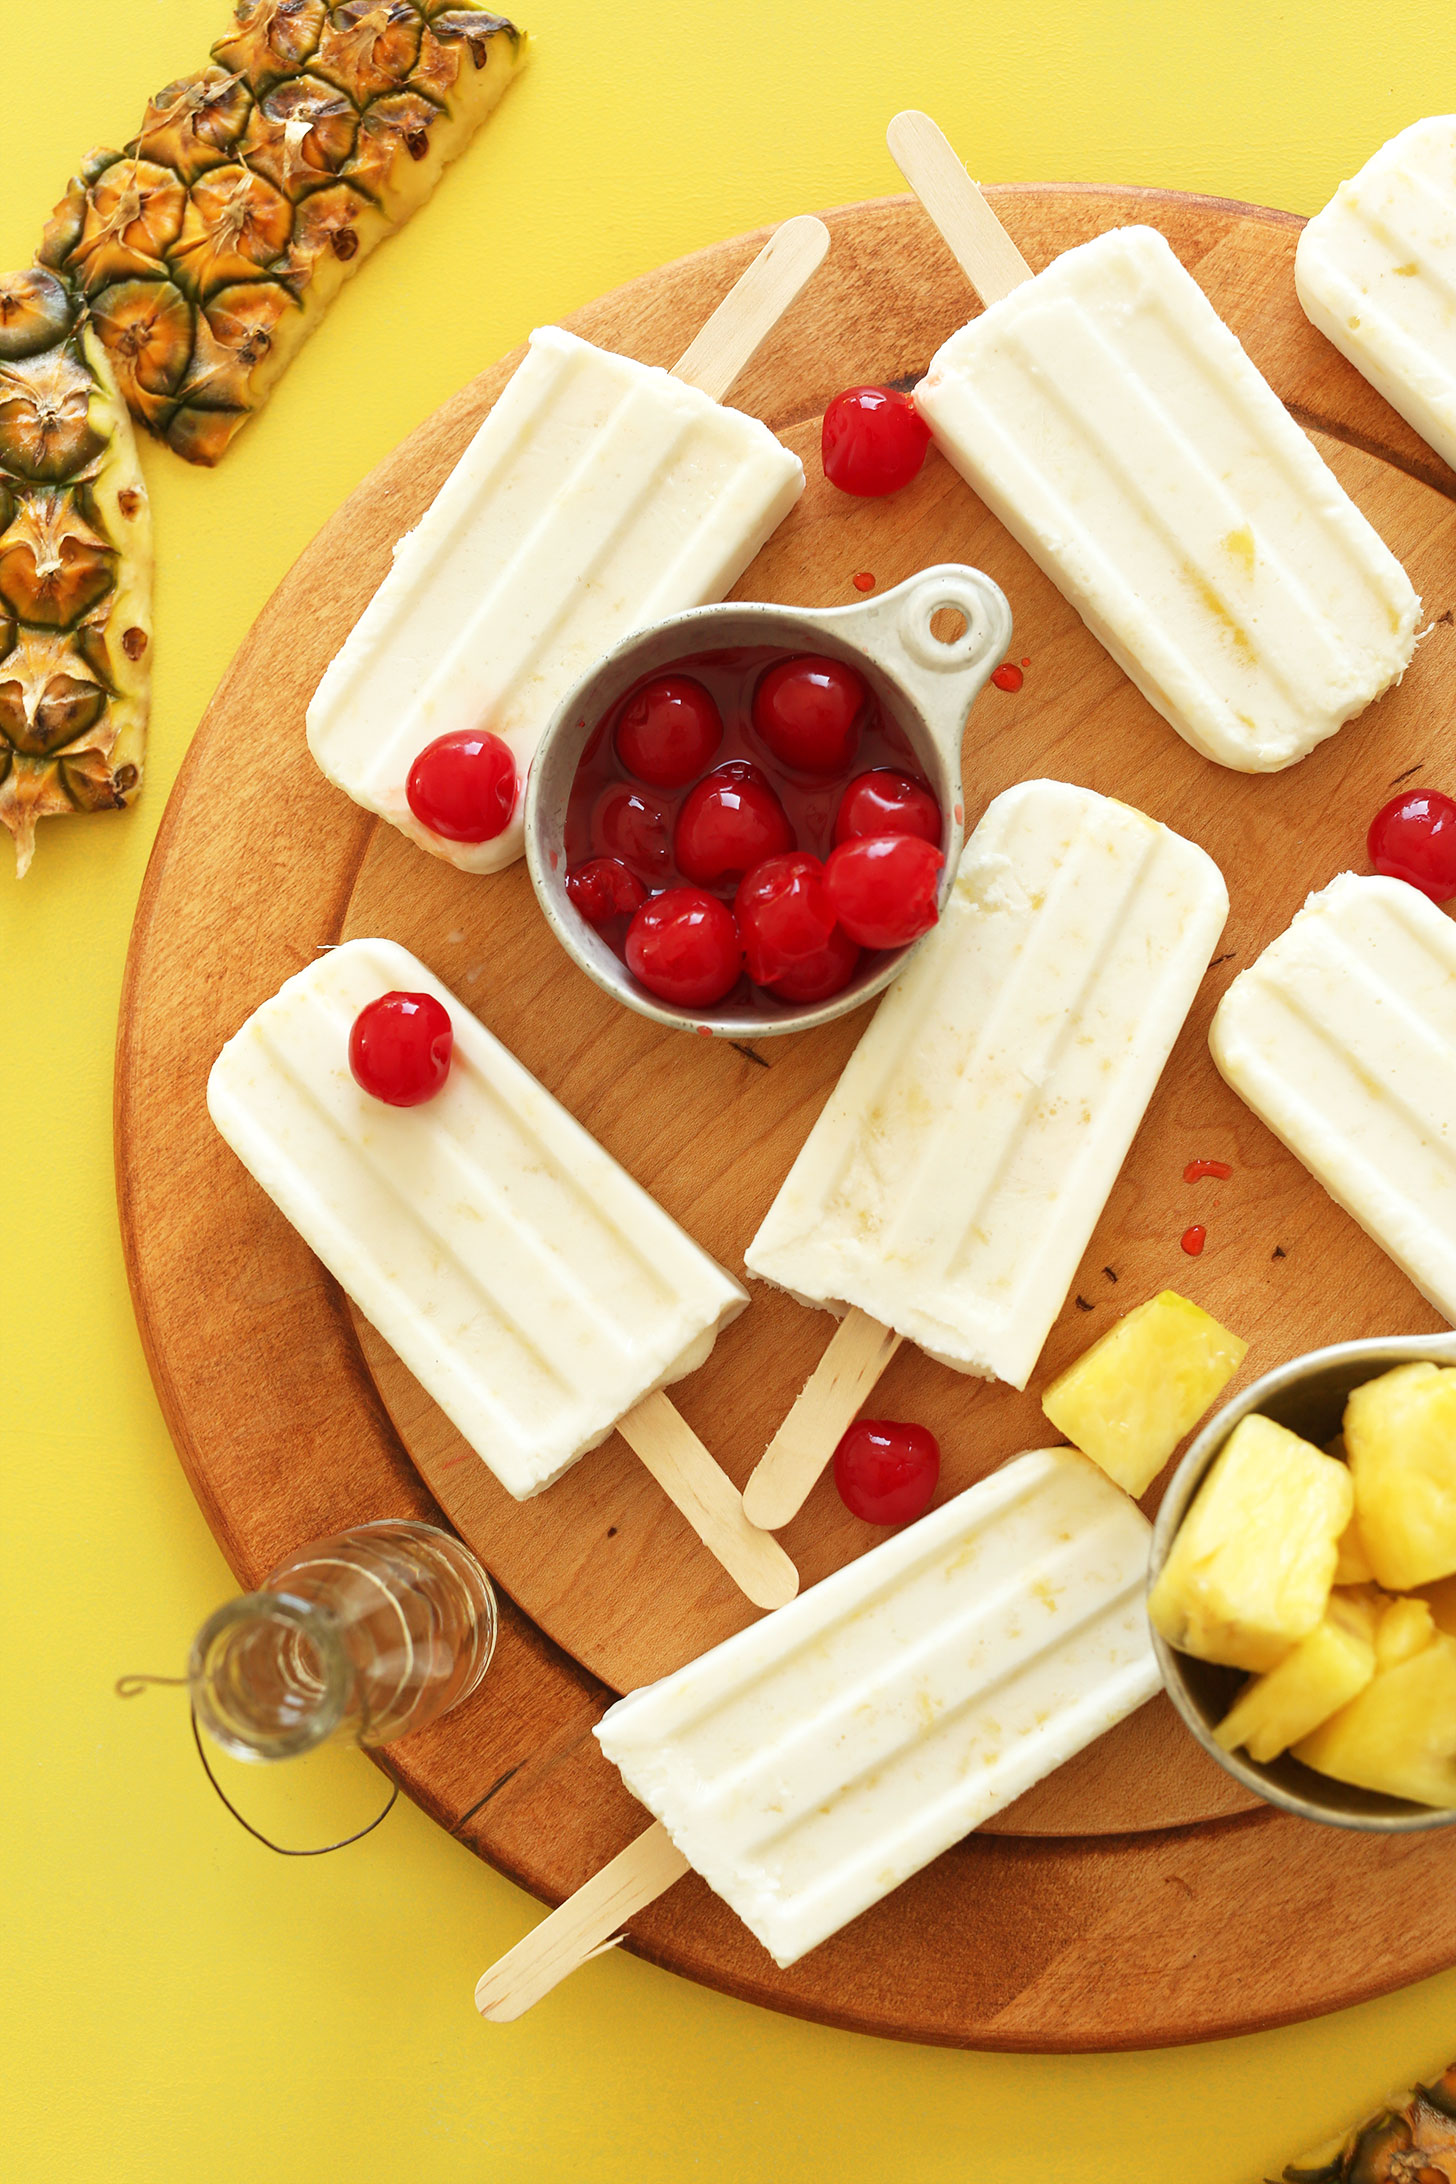 AMAZING 5-ingredient Pina Colada Pops! Creamy, refreshing, SO delicious! #vegan #plantbased #glutenfree #pinacolada #recipe #summer #minimalistbaker